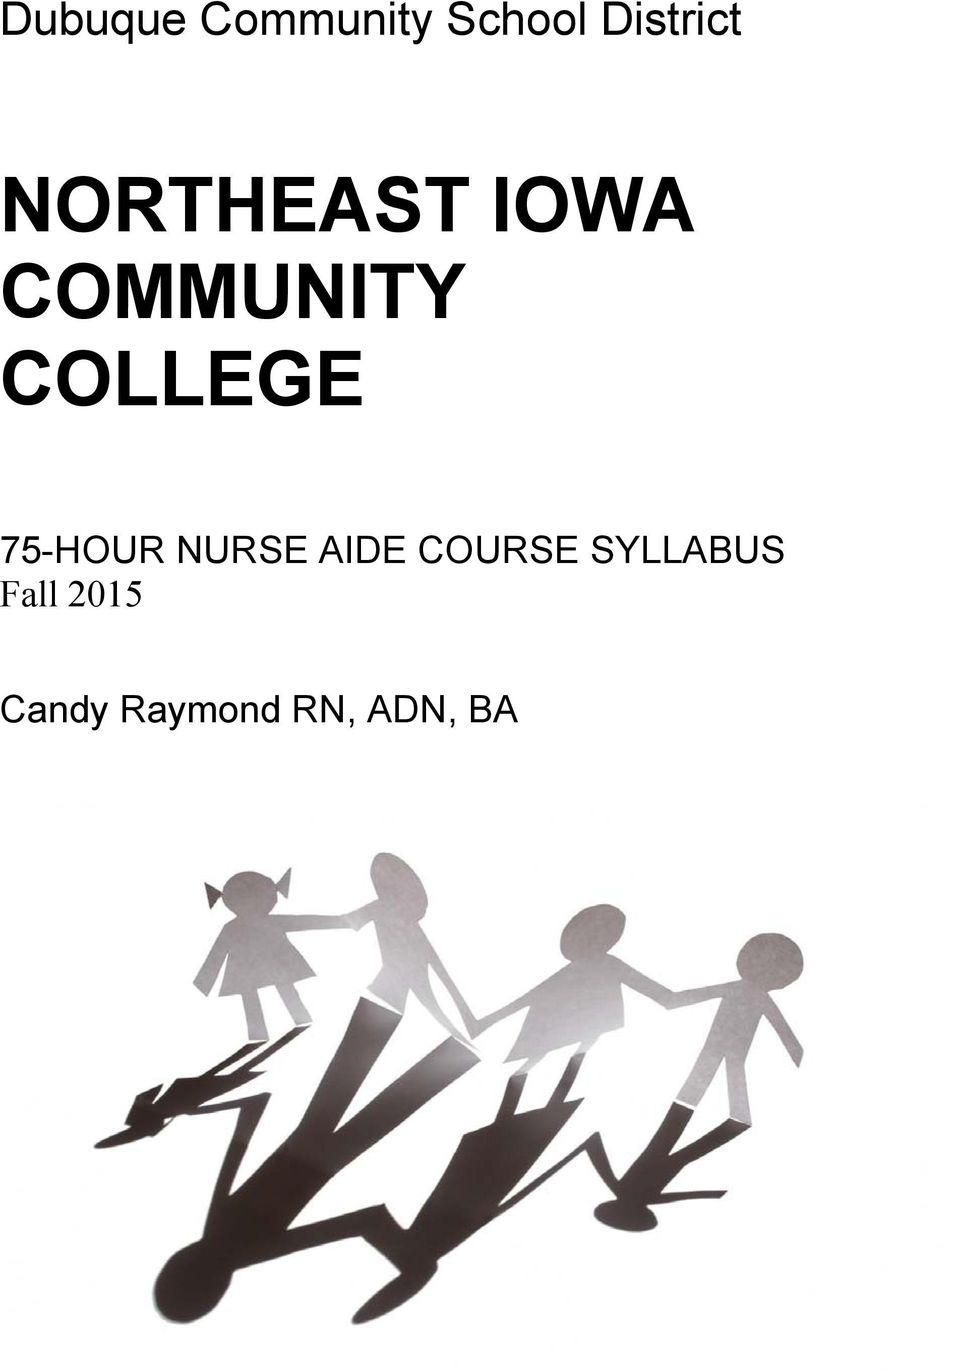 75-HOUR NURSE AIDE COURSE SYLLABUS